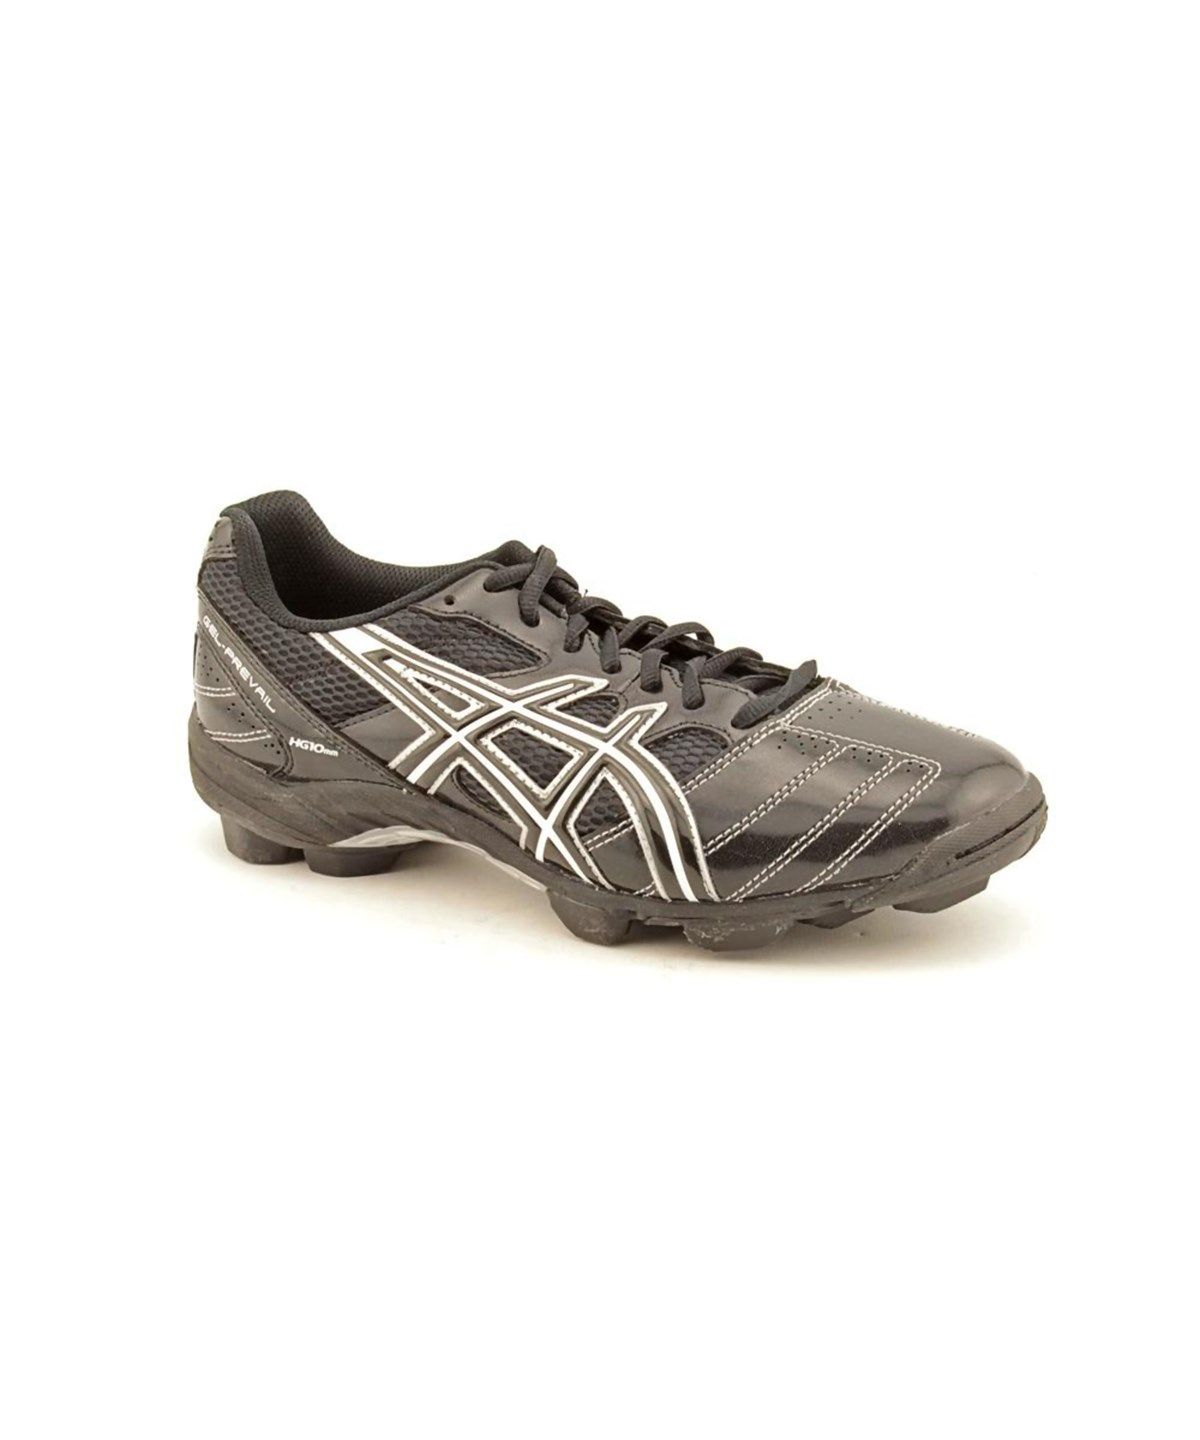 ASICS ASICS GEL GEL PREVAIL 419 HOMME ROND . TOE SYNTHETIC CLEATS . f9f8427 - wisespend.website